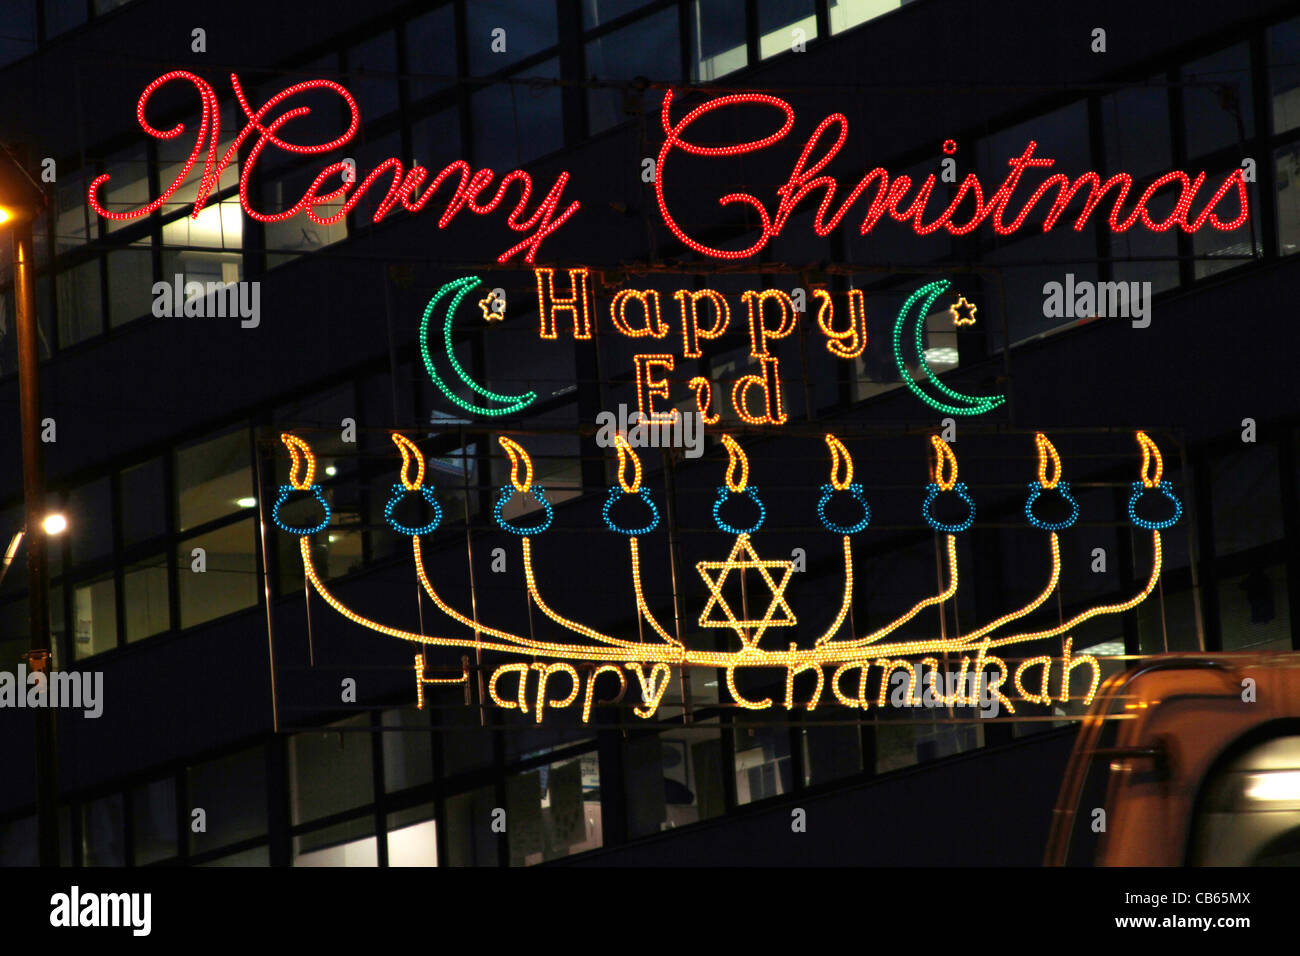 christmas lights merry christmas happy eid happy chanukah christian muslim